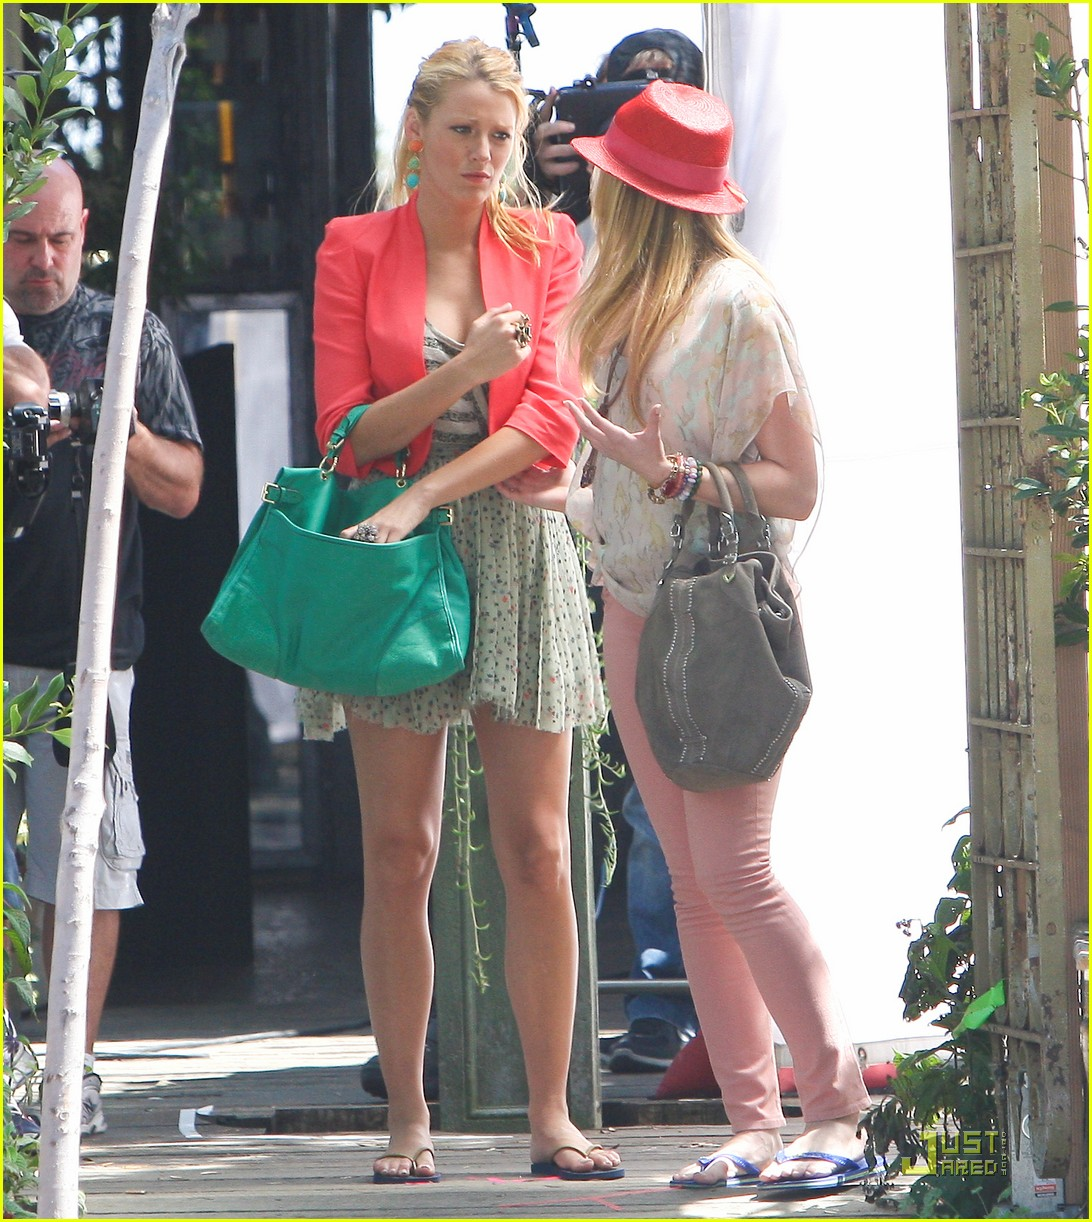 Blake Lively & Kaylee DeFer: Gossip Girls! Blake Lively